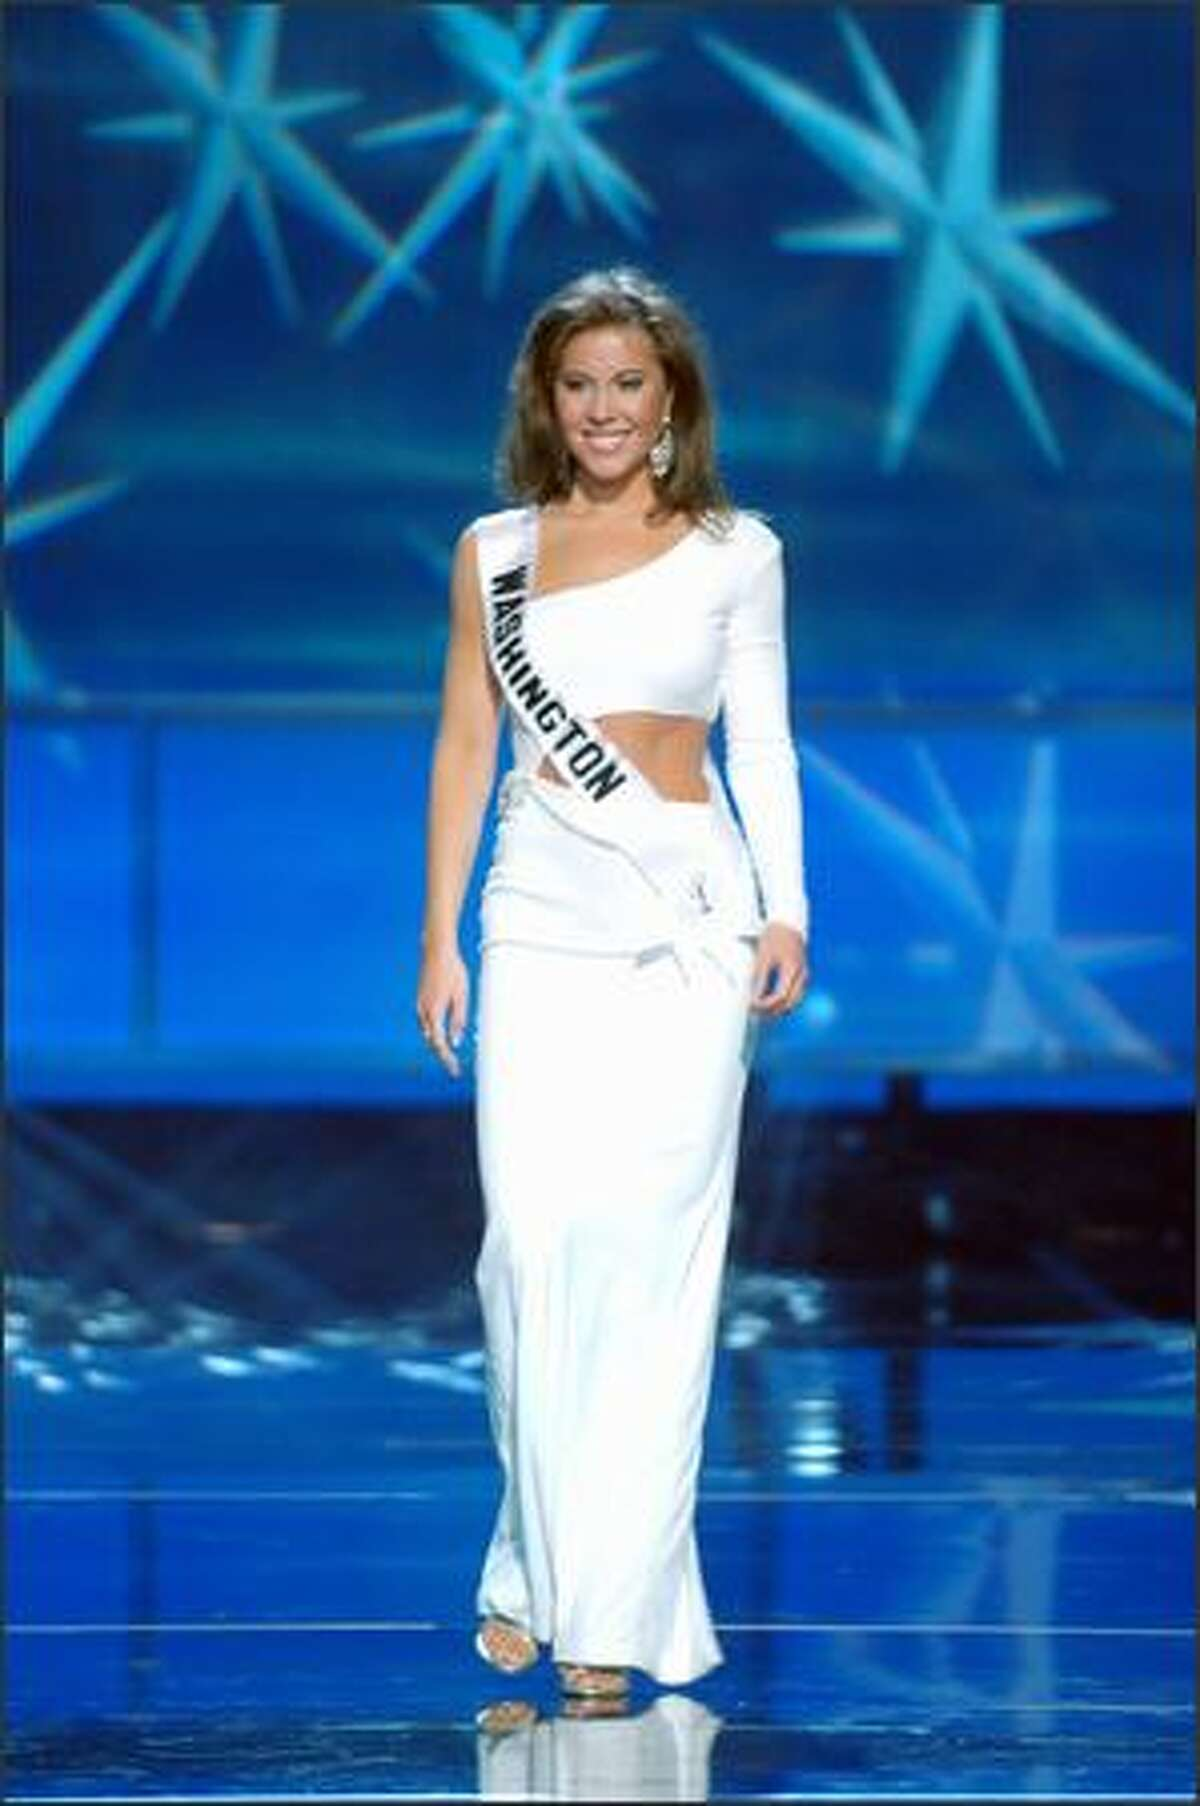 Amy Crawford, Miss Washington, competes in an evening gown of her choice during the Miss USA 2005 Presentation Show in Baltimore, Md., on Wednesday. Crawford, 25, a five-time runner-up in two different pageants before being crowned Miss Washington USA last November, is a singer and account representative for a local medical skin-care company. The pageant finals are Monday night.